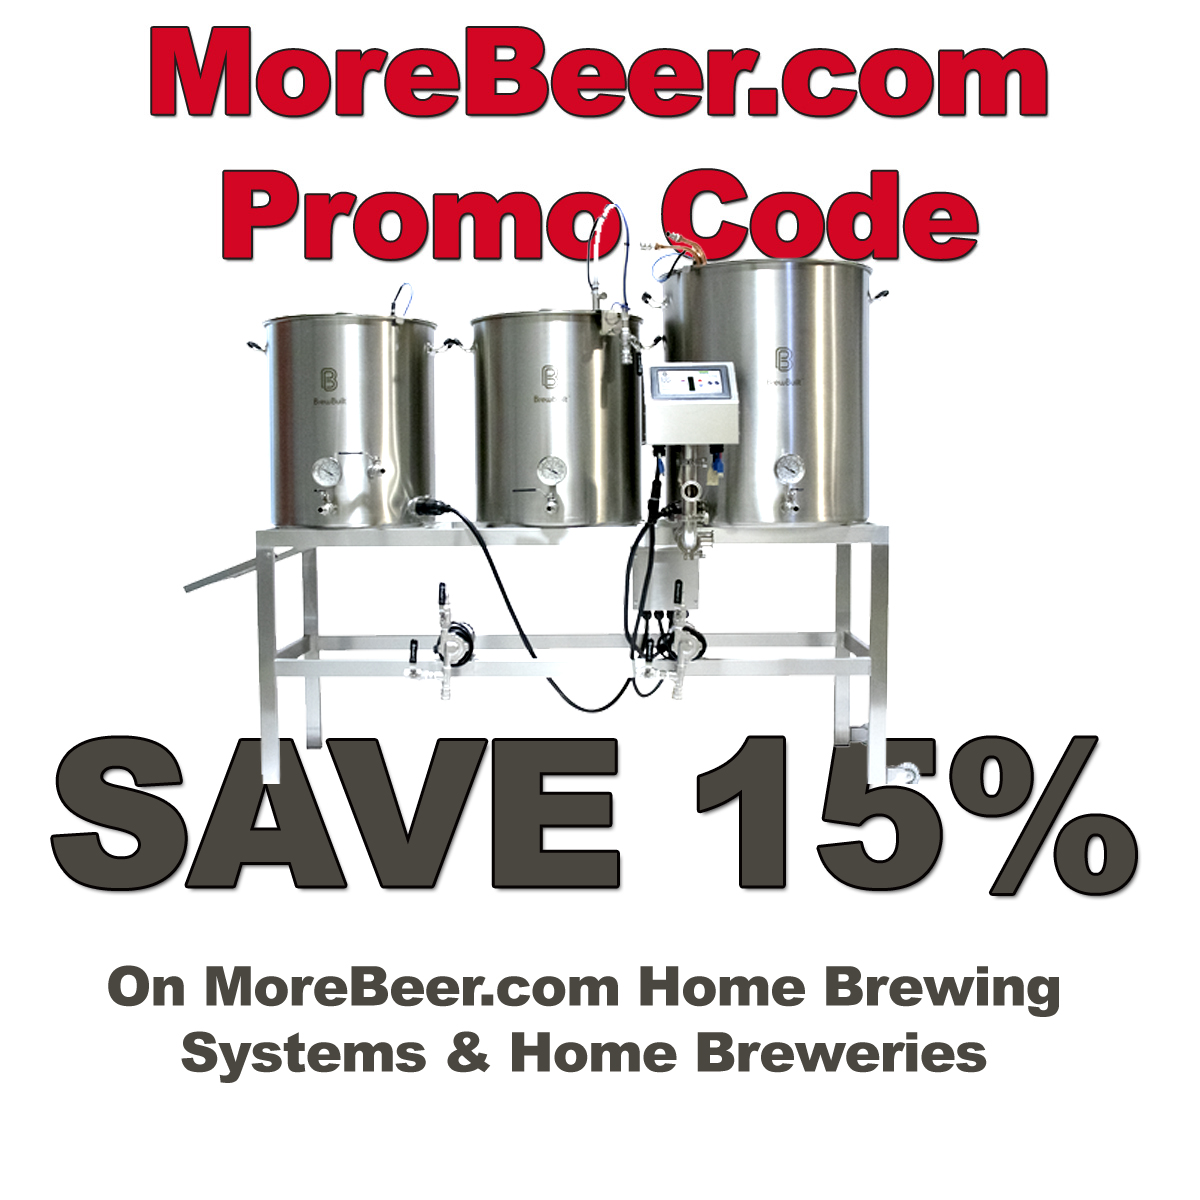 MoreBeer.com Coupon Code for 15% Off Home Brewing Systems